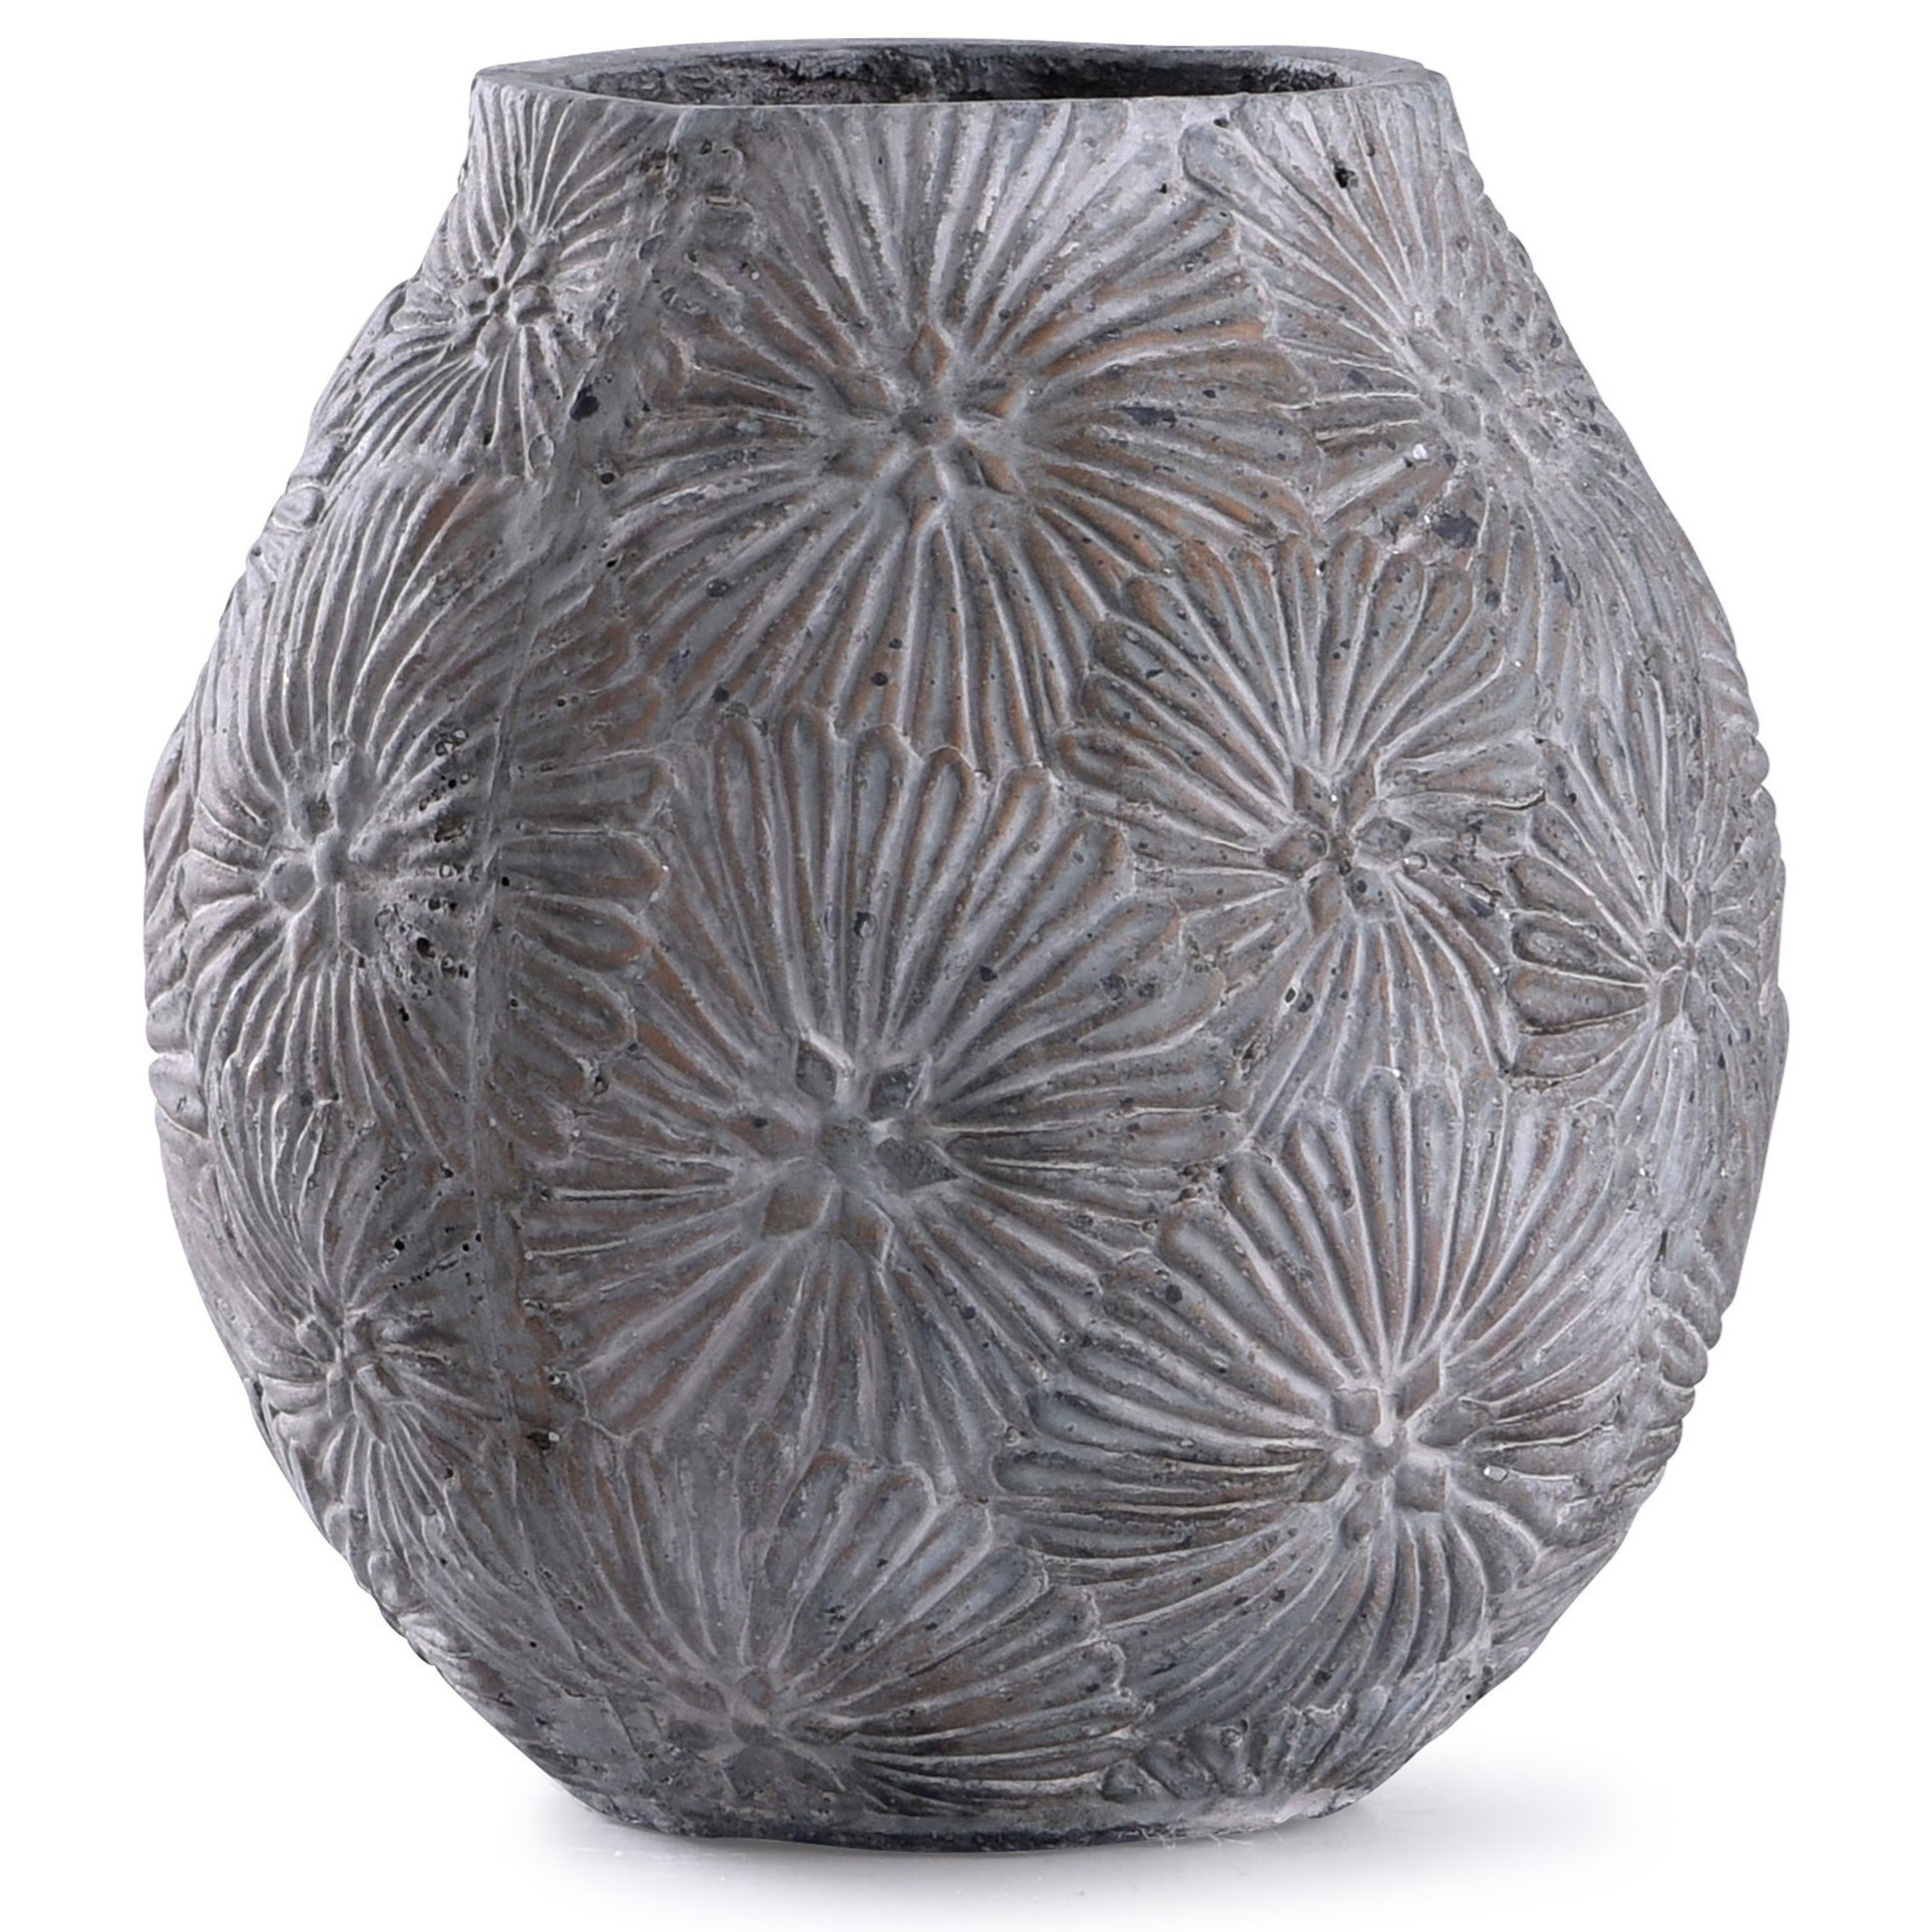 Accessories Cleobury Blue Vase by StyleCraft at Alison Craig Home Furnishings